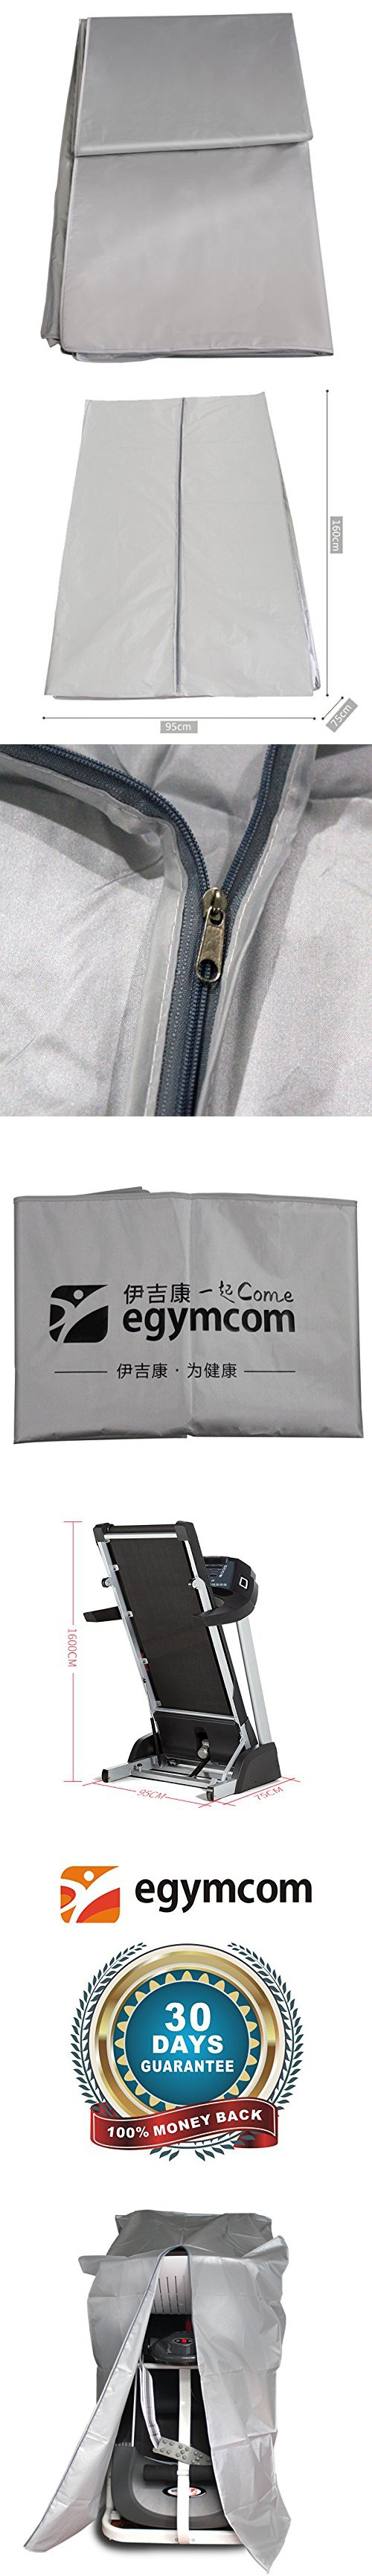 Treadmill Cover, Egymcom Running Machine Protective Folding Cover Dustproof Waterproof Outdoor Cover(Silver Color)